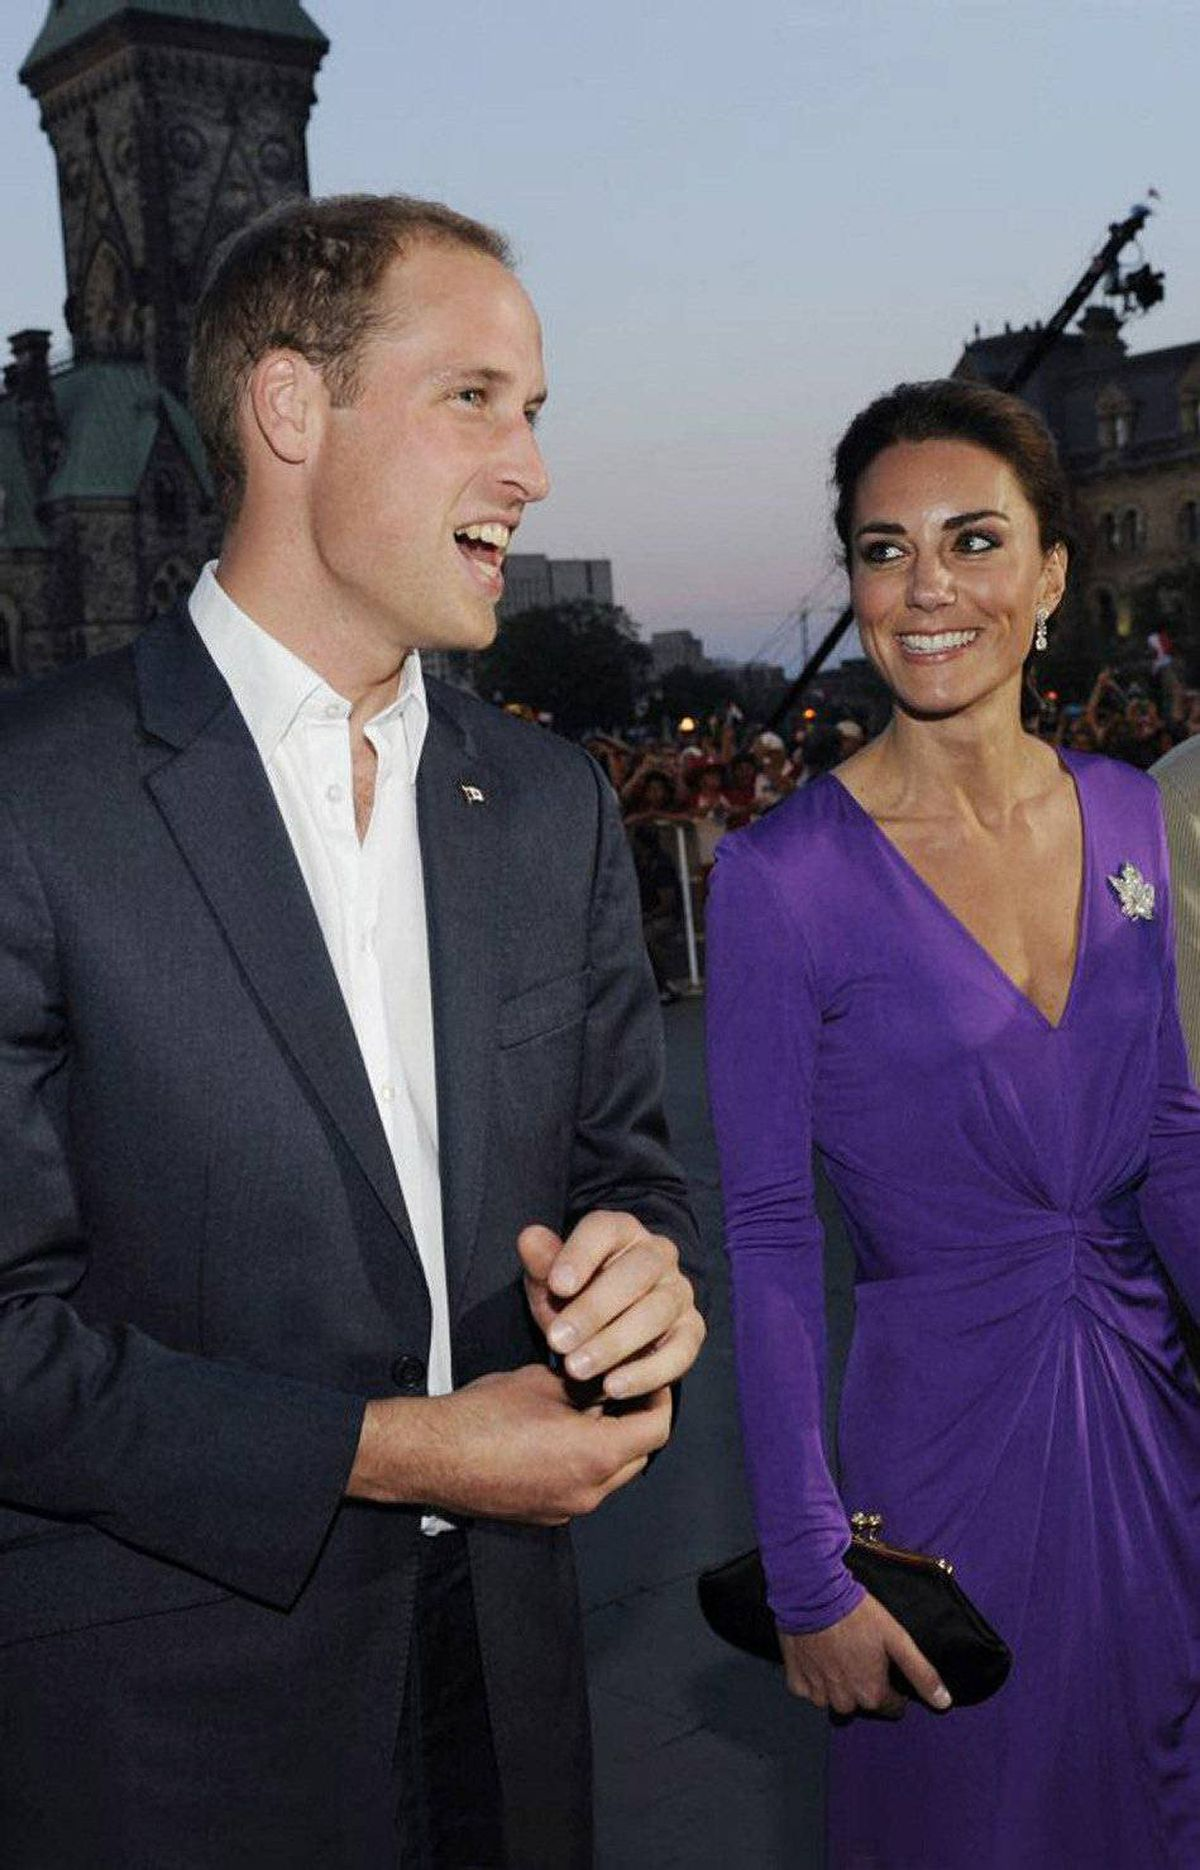 Prince William, Duke of Cambridge and Catherine, Duchess of Cambridge arrive for the Evening National Canada Day Celebrations in the capital accompanied by representatives of the National Capitol Commission on July 1, 2011 in Ottawa.